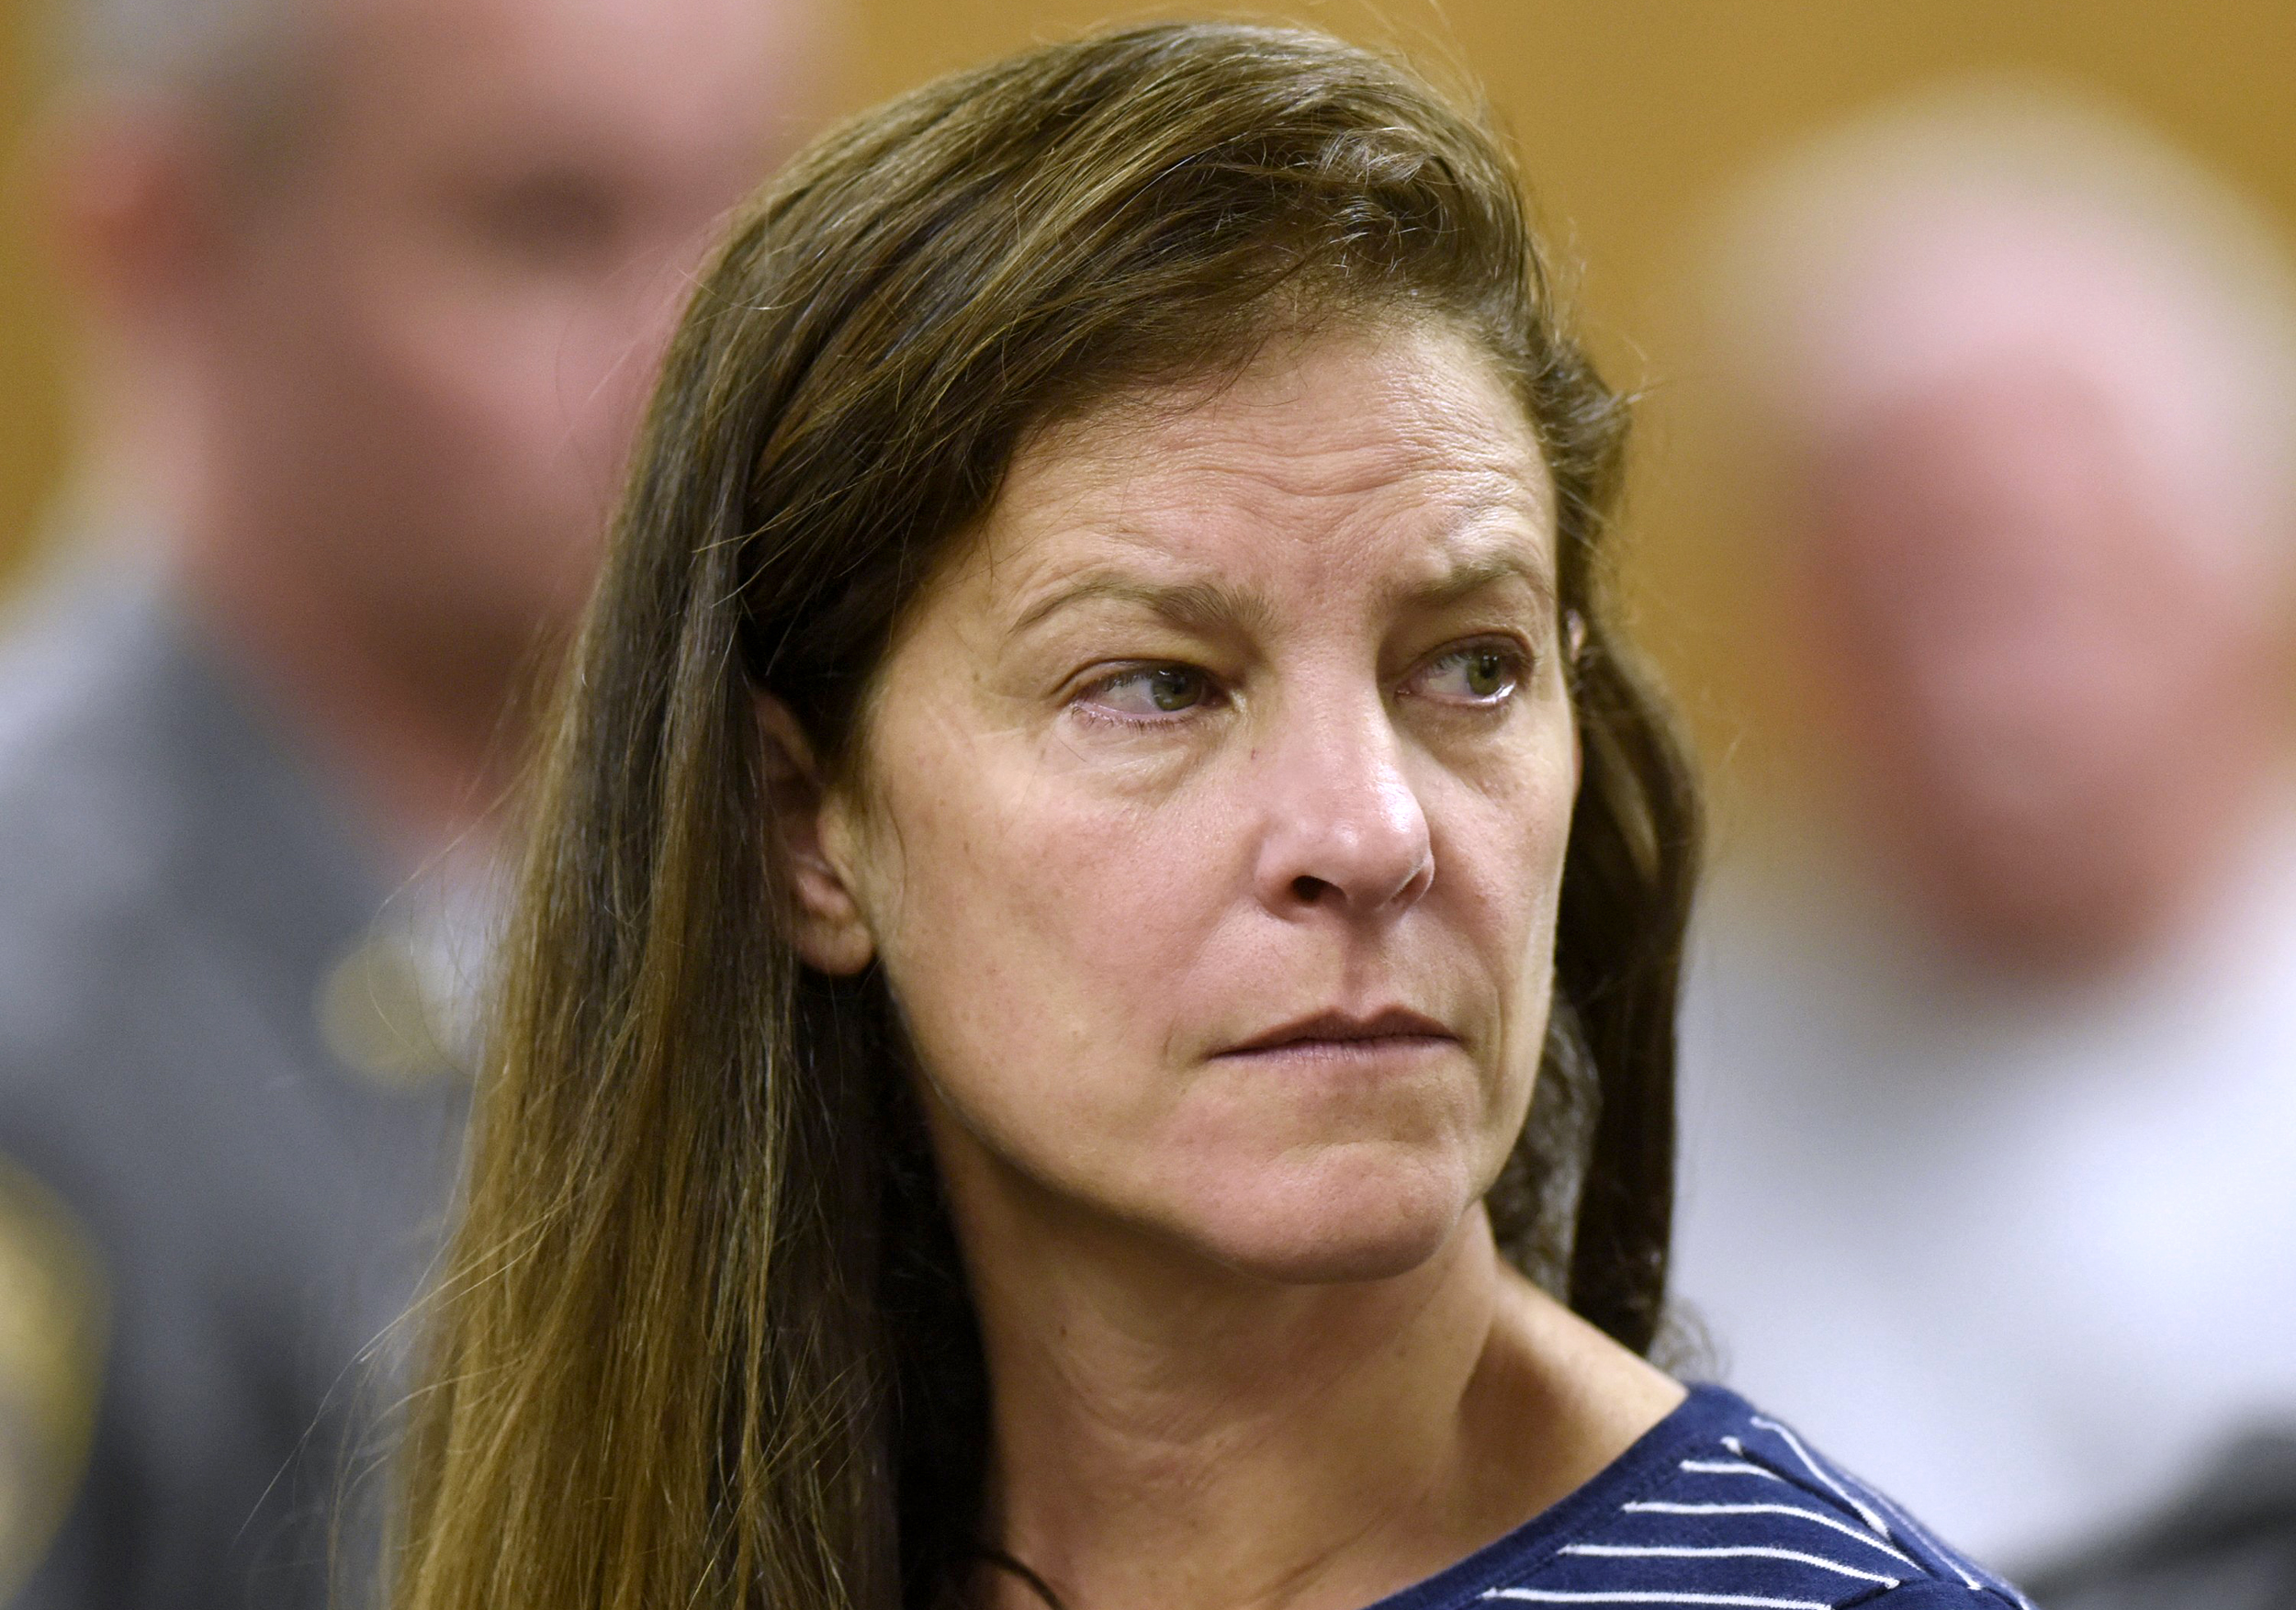 Image: Michelle Troconis is arraigned on charges at Norwalk Superior Court in Connecticut on June 3, 2019.